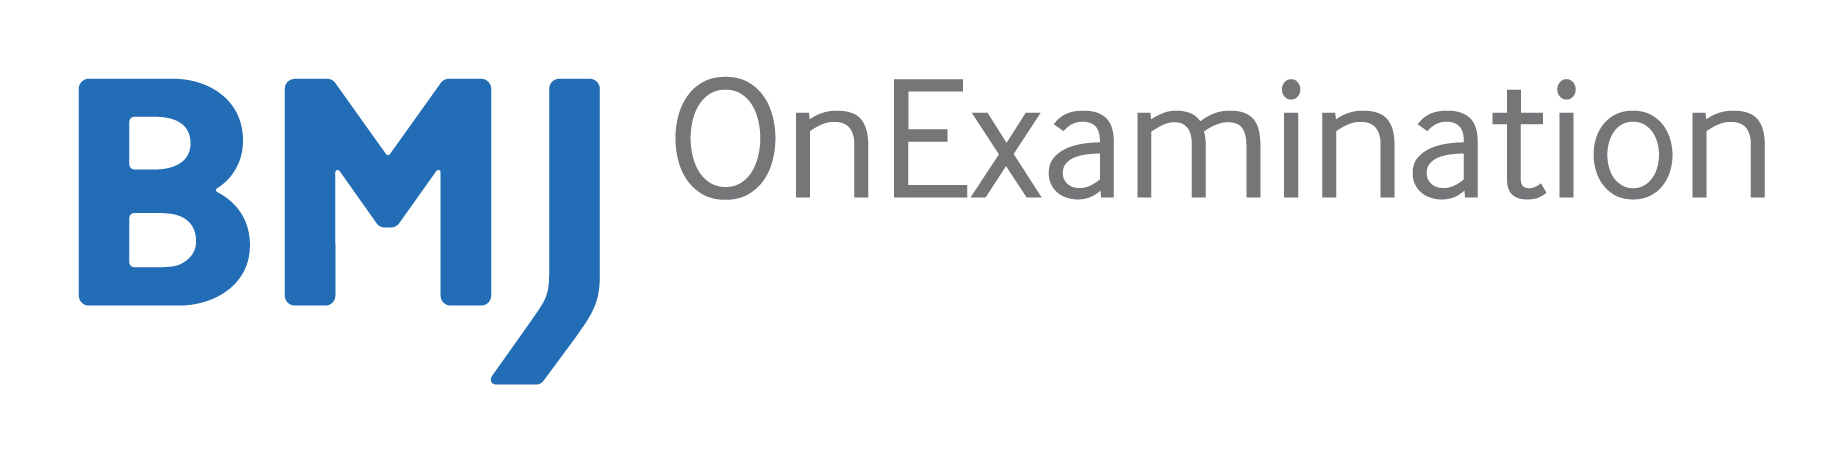 BMJ OnExamination logo